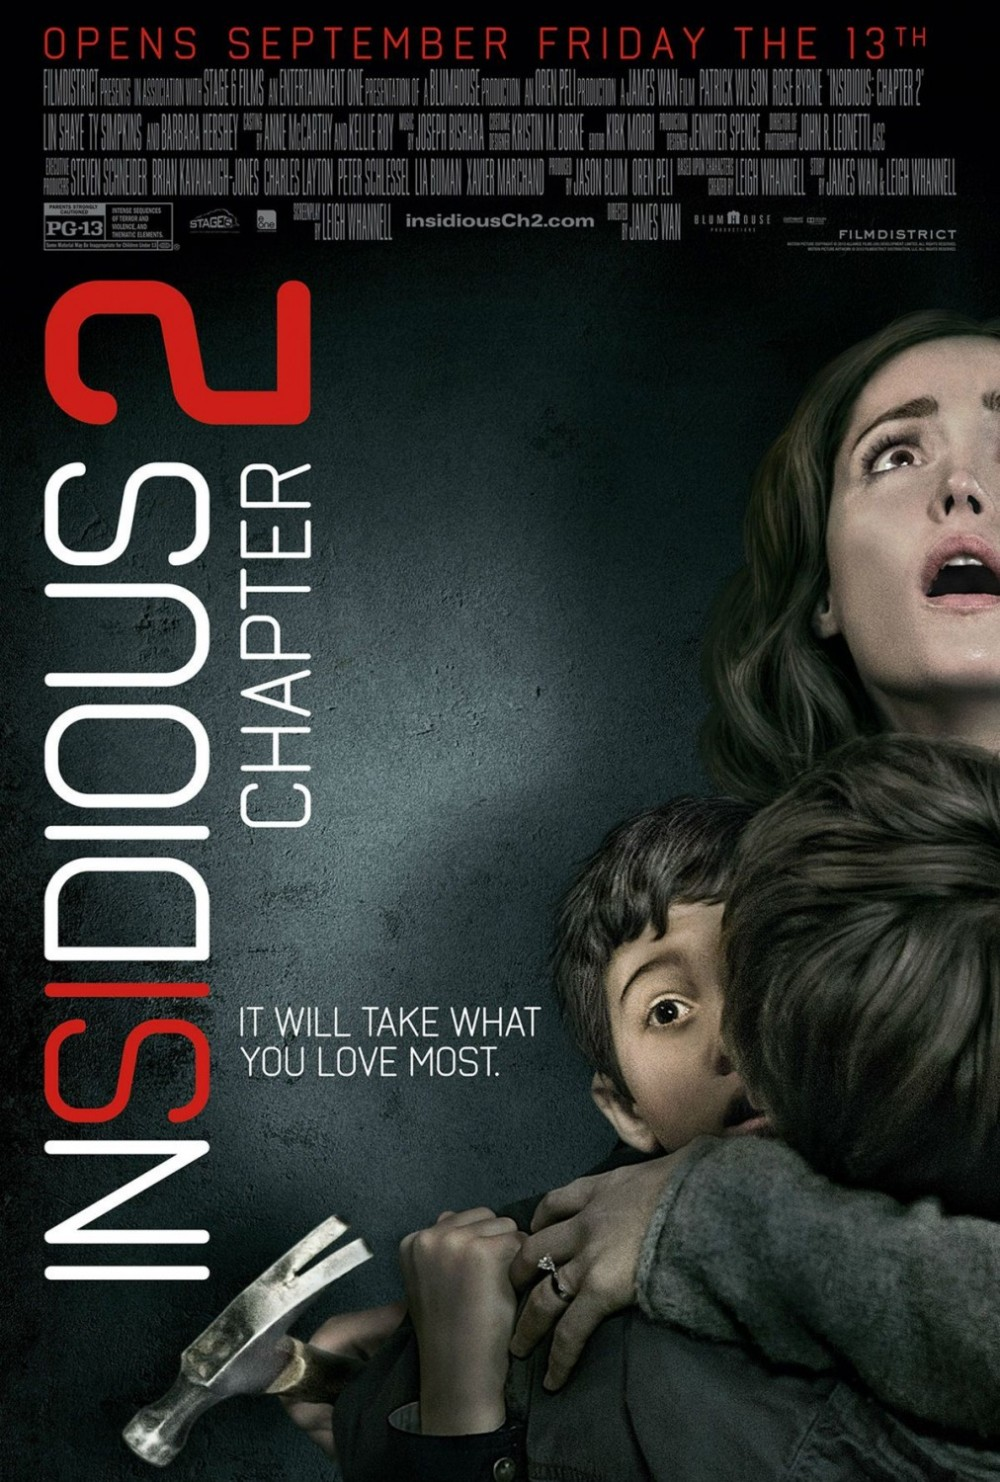 Insidious Chapter 2 poster